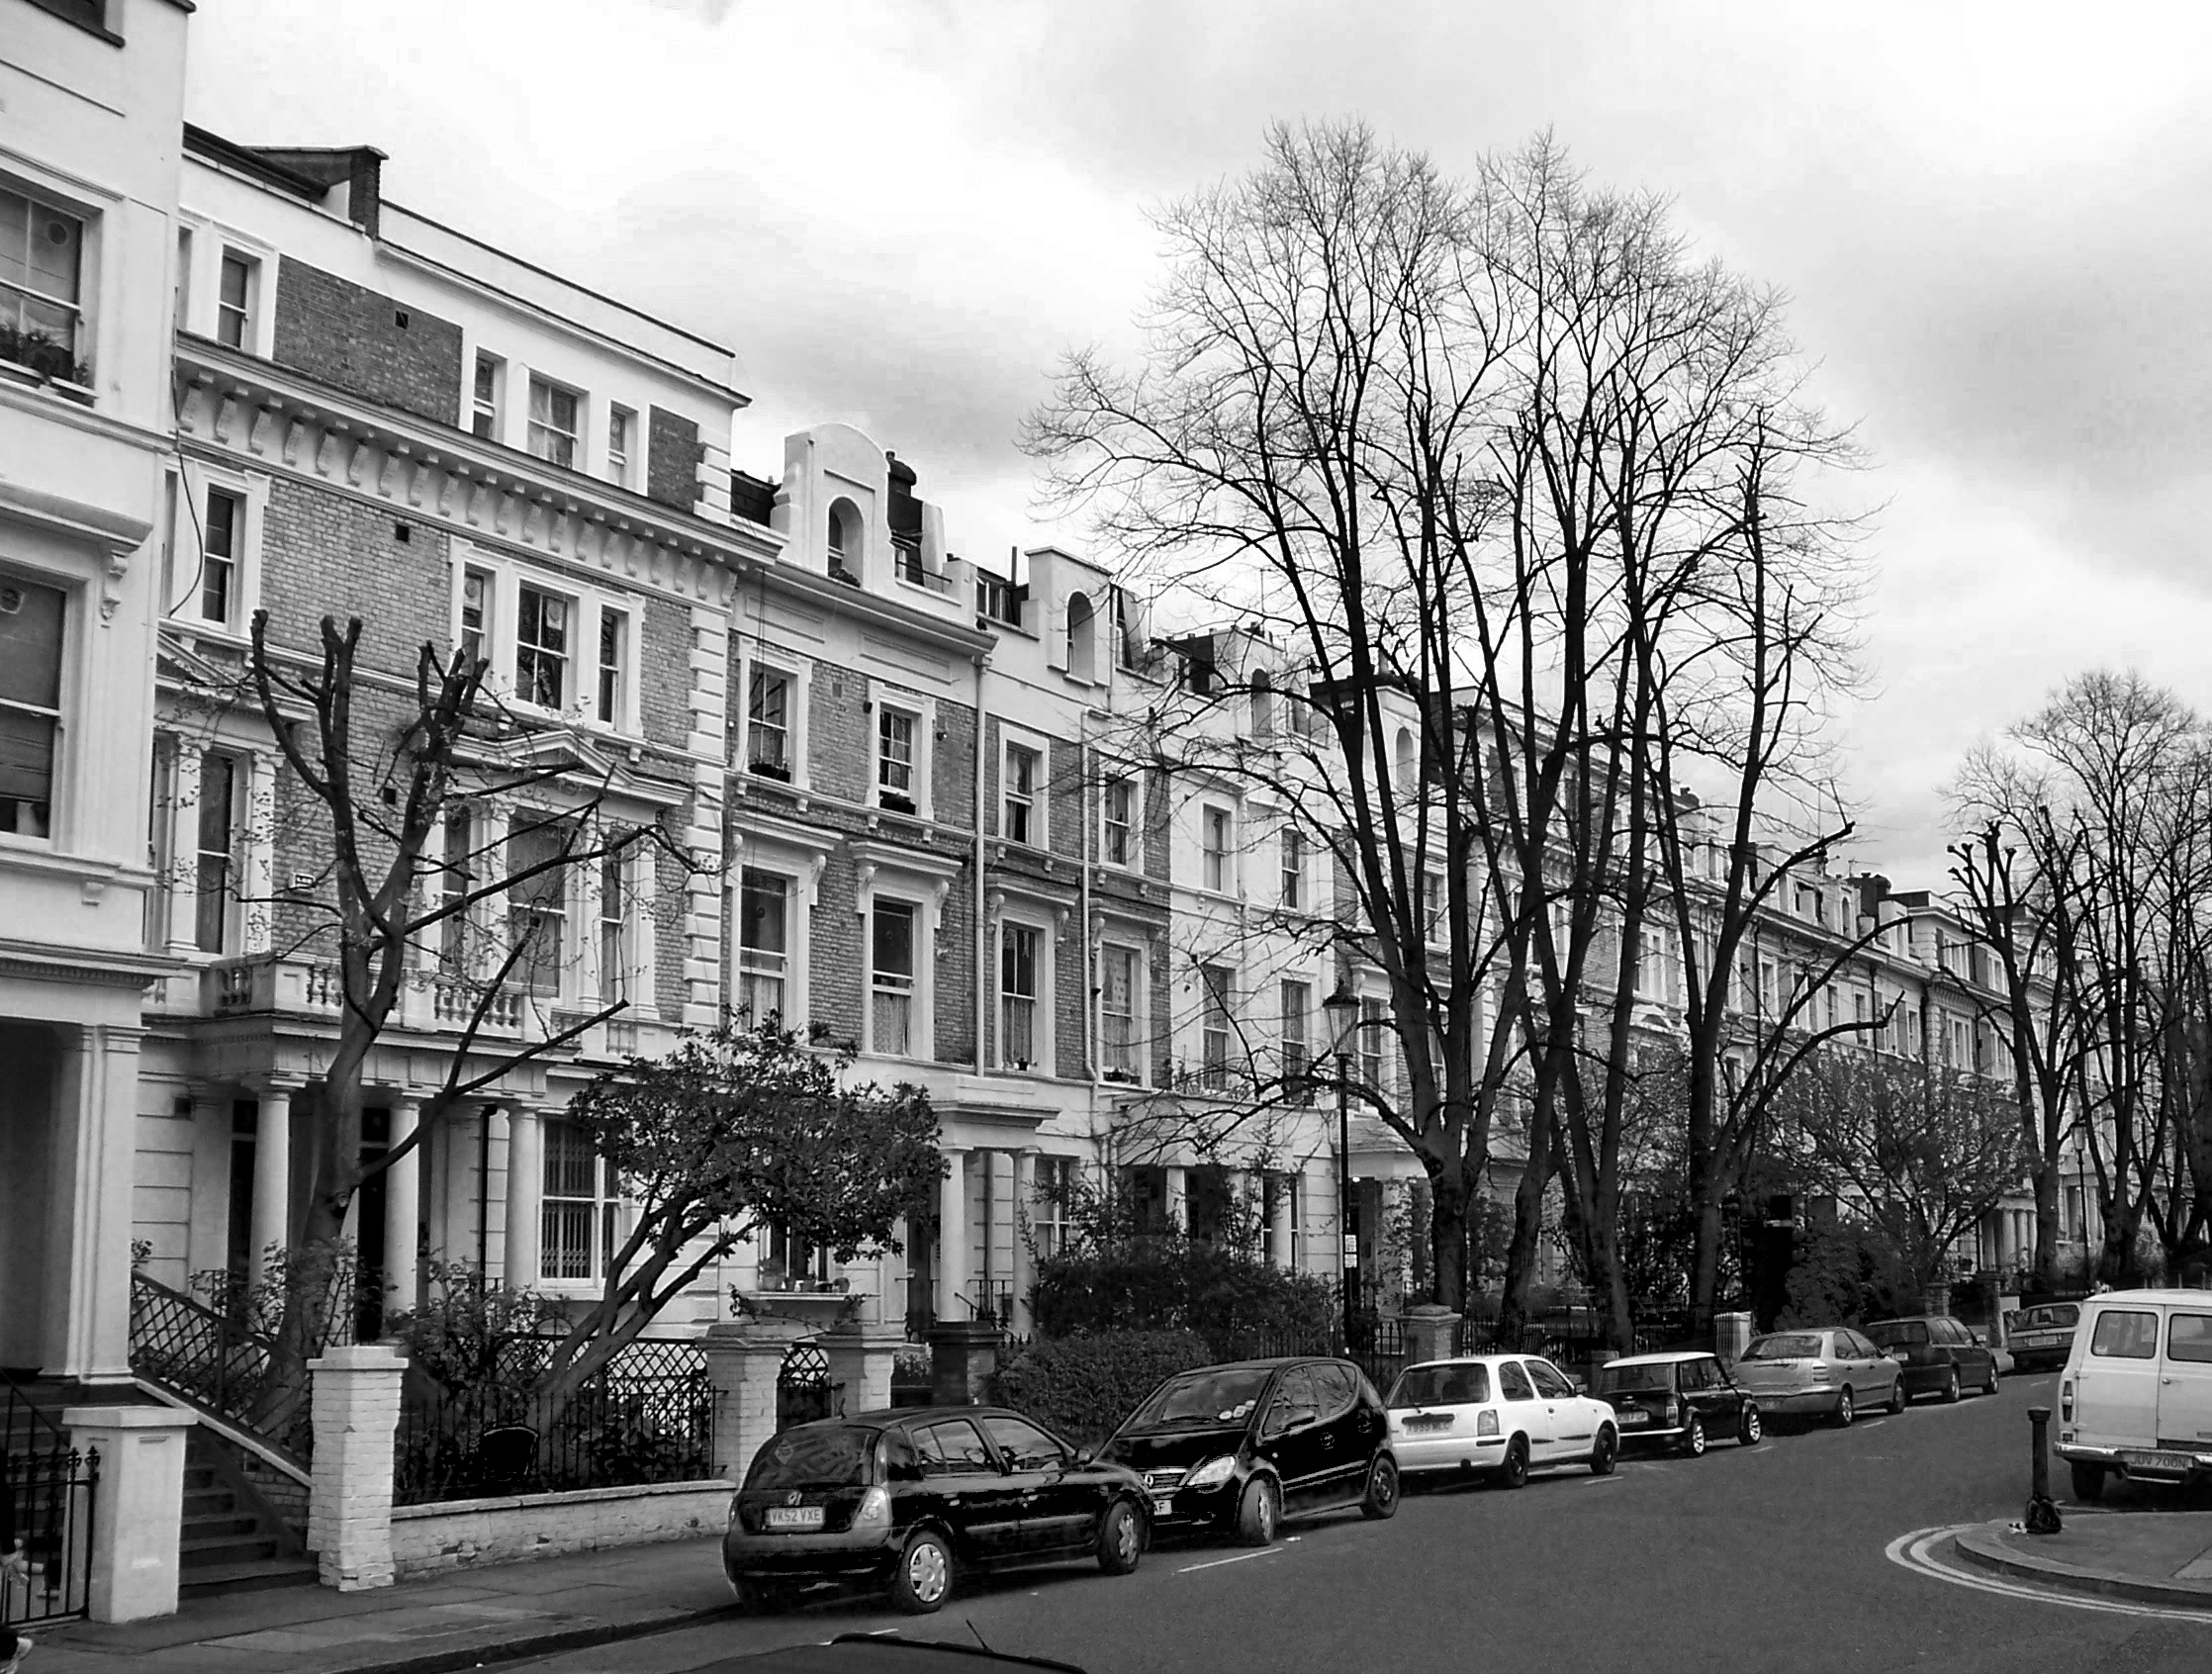 London, Apartments, Blackandwhite, Buildings, Cars, HQ Photo